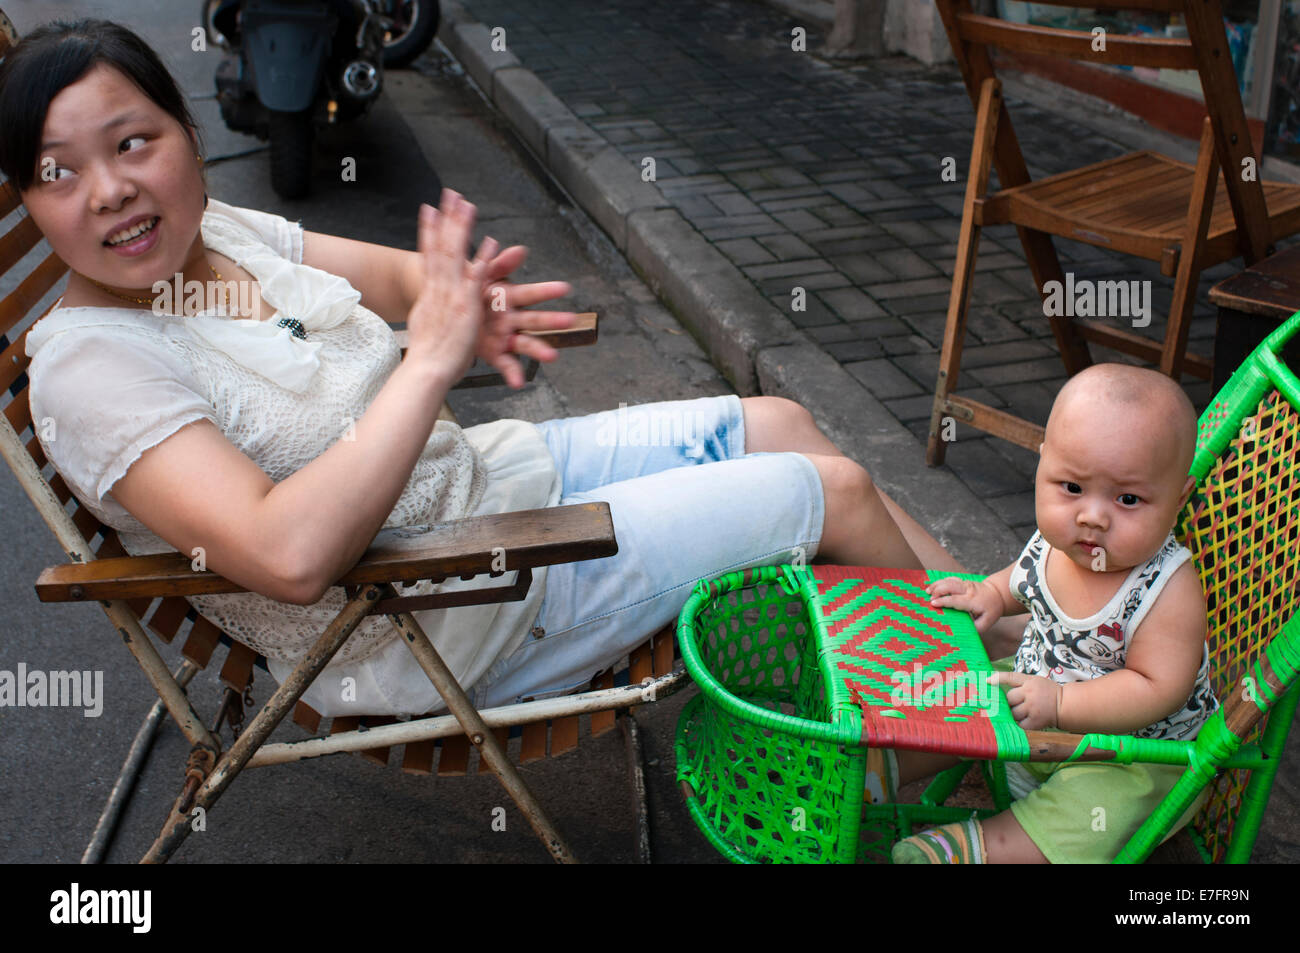 Mother take car of his children in the streets of Shanghai. Bringing children to live in Shanghai can create lots - Stock Image